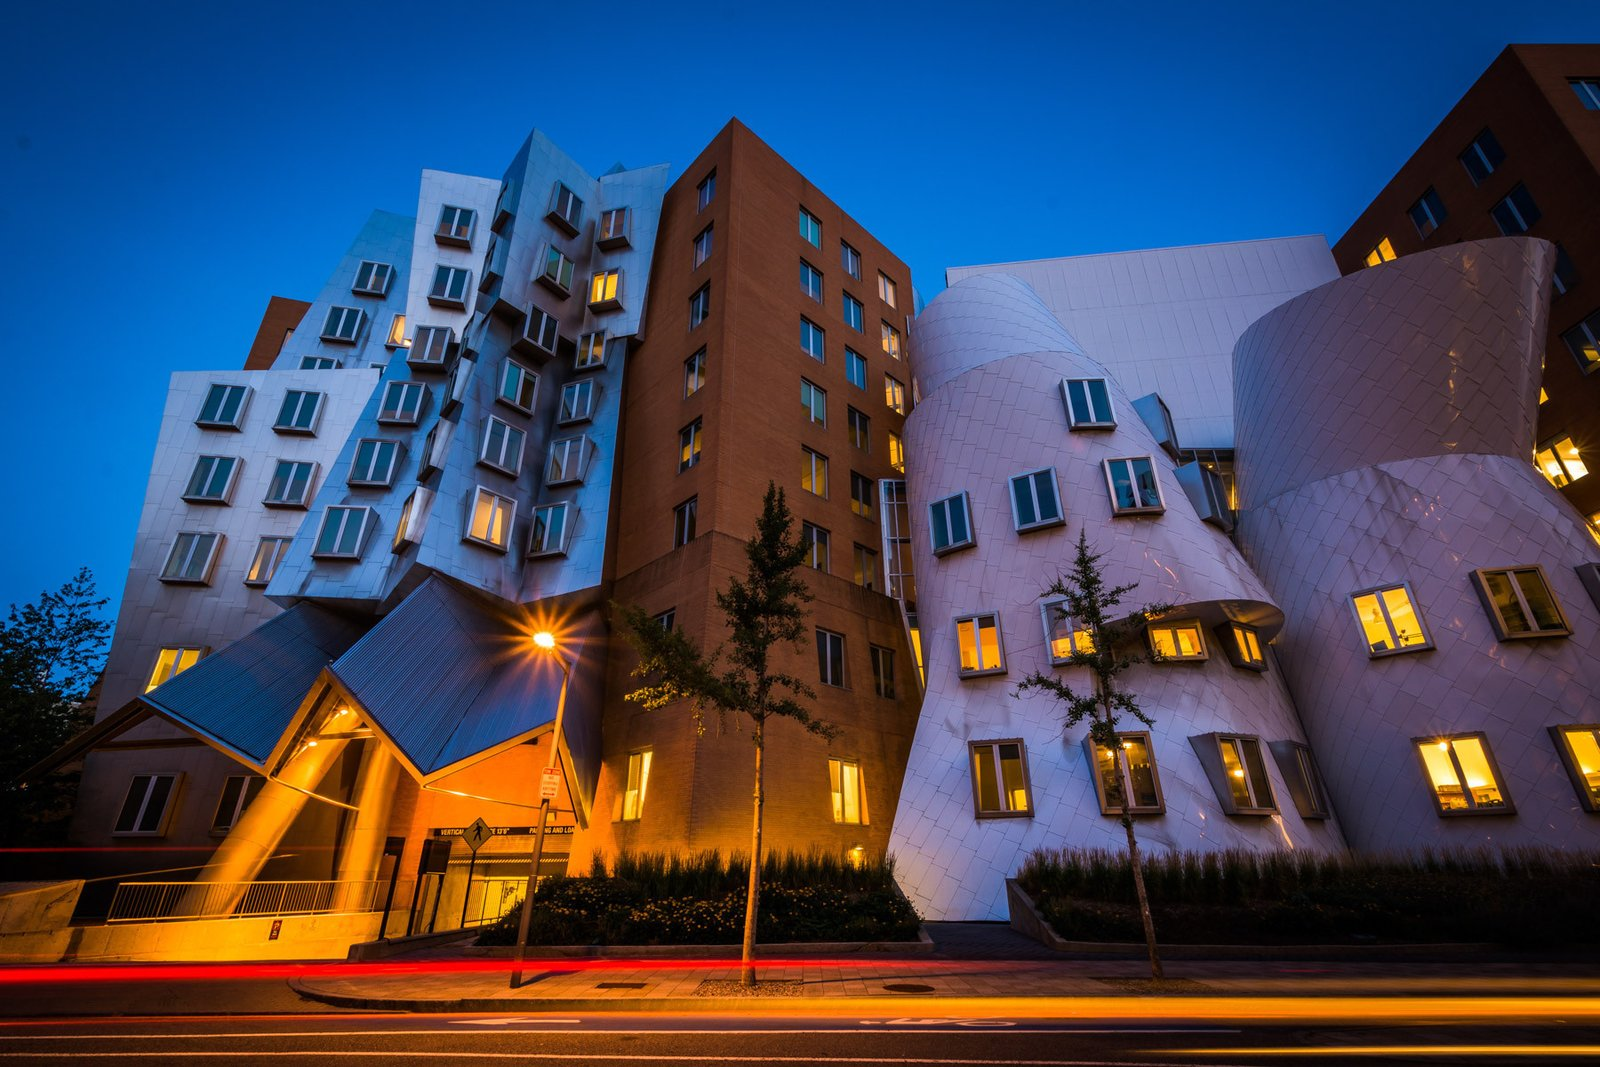 Frank Gehry buildings, Stata Center